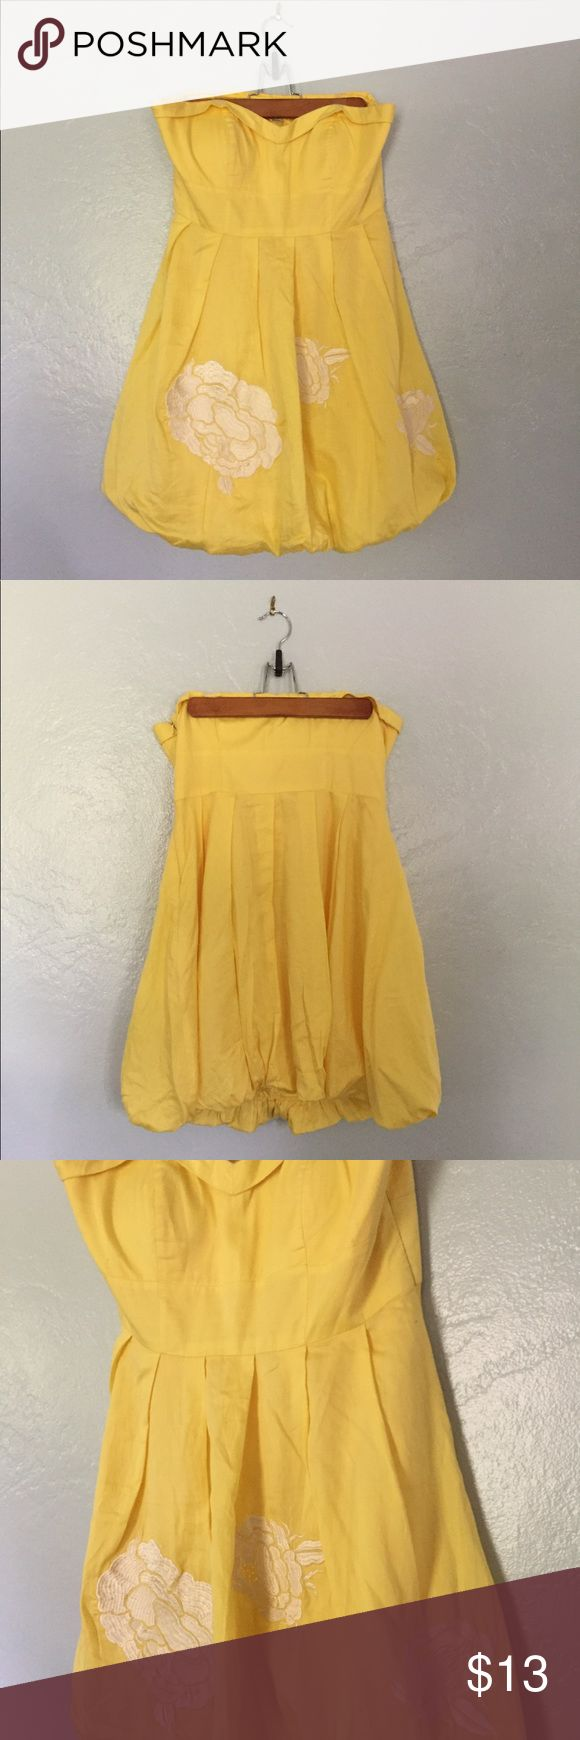 Mini yellow strapless dress Mini yellow zip up strapless dress with white embroidered flowers Forever 21 Dresses Strapless